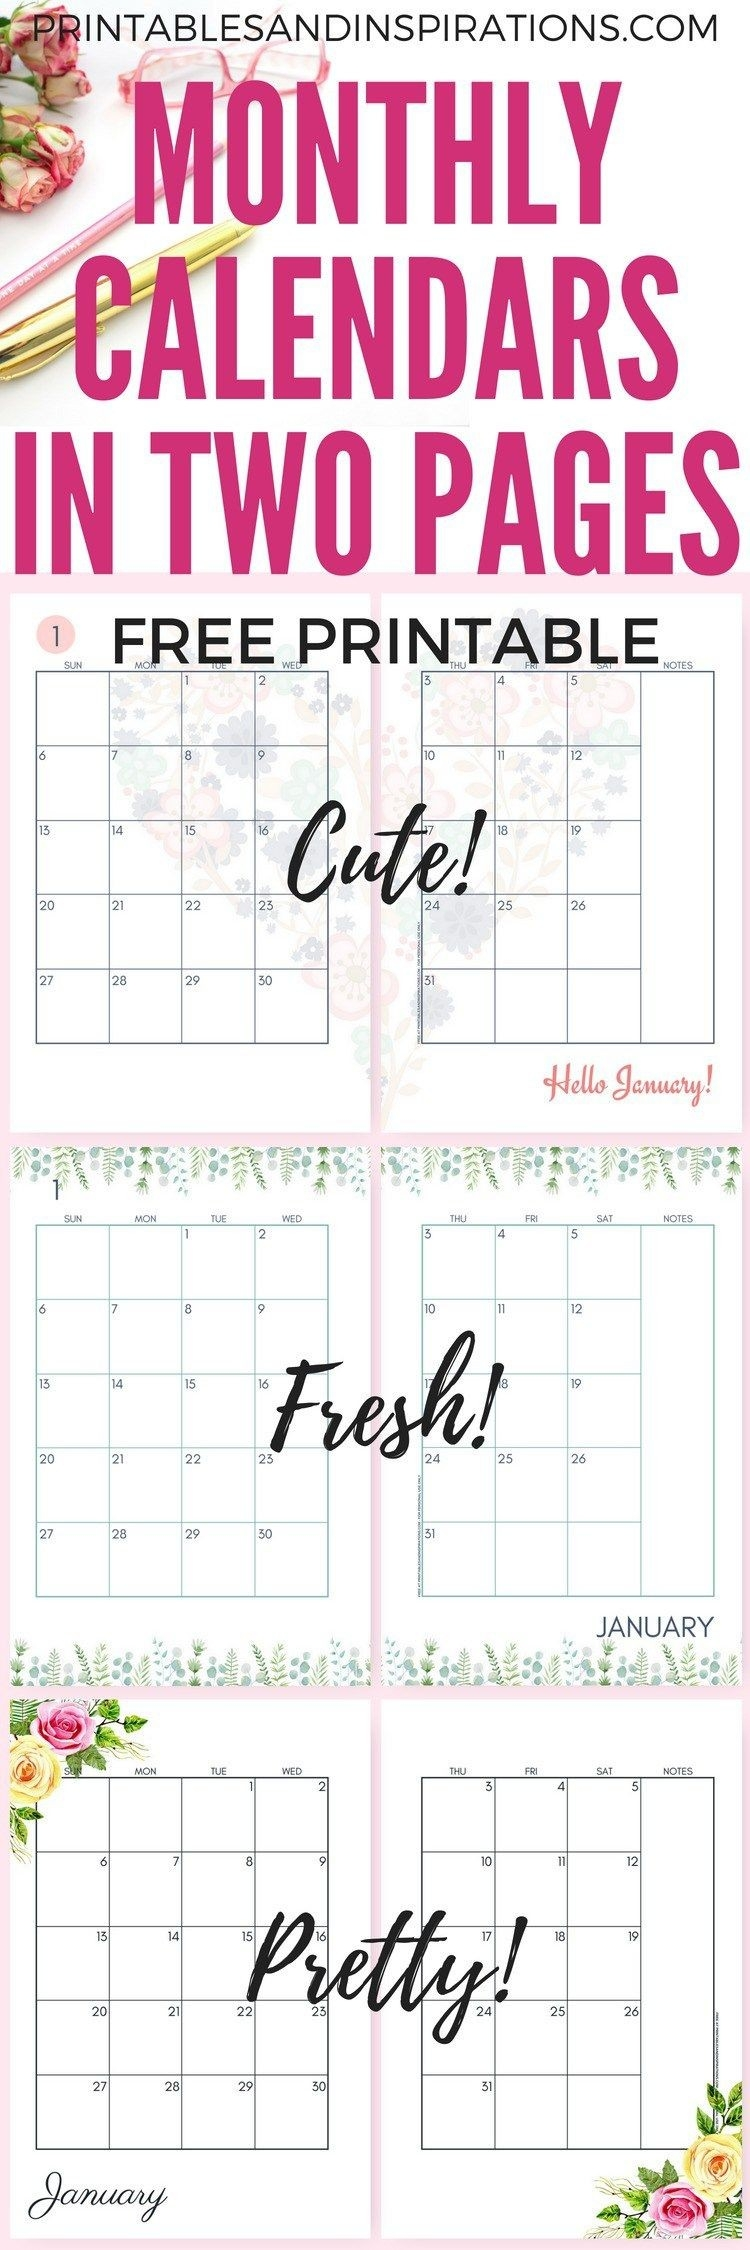 Pin On Printables-Free Two Page Monthly Planner Templates